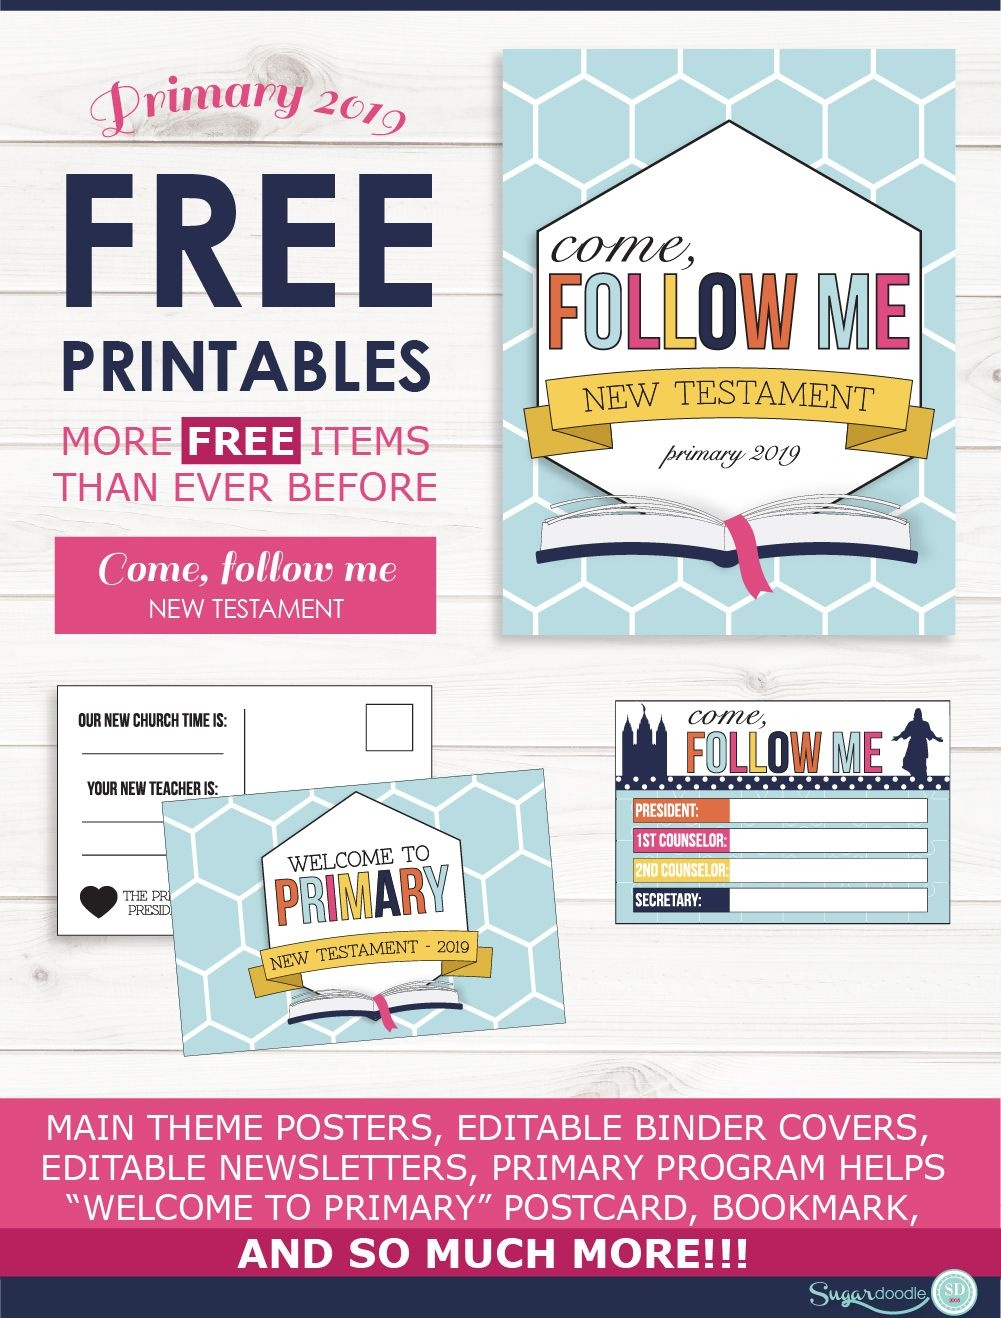 Primary 2019-Come Follow Me- Free Printables | Primary | Primary - Free Printable Music Posters